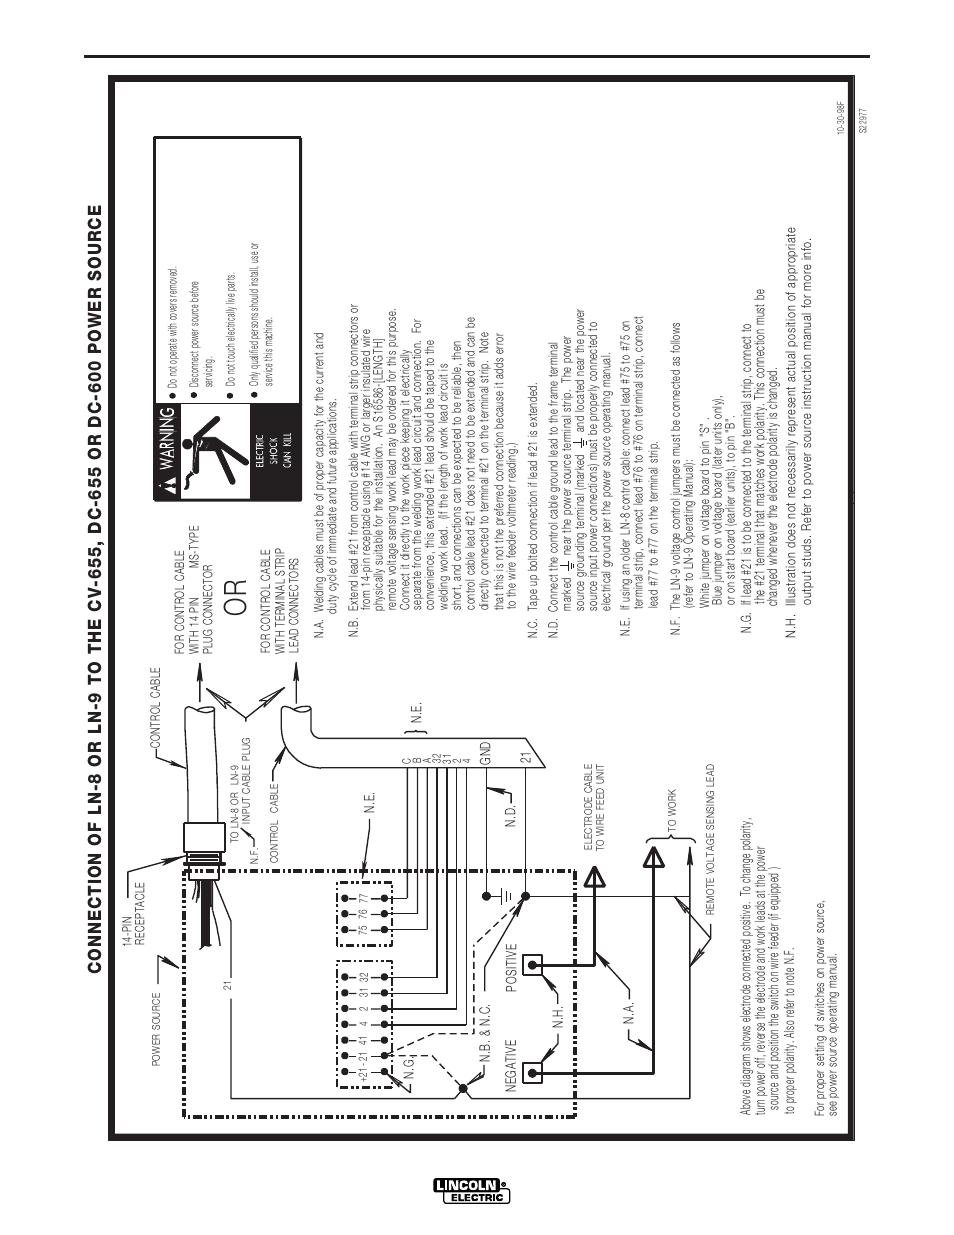 Lincoln Dc 600 Wiring Diagram Electrical Diagrams 1964 Vacuum Connections Motor